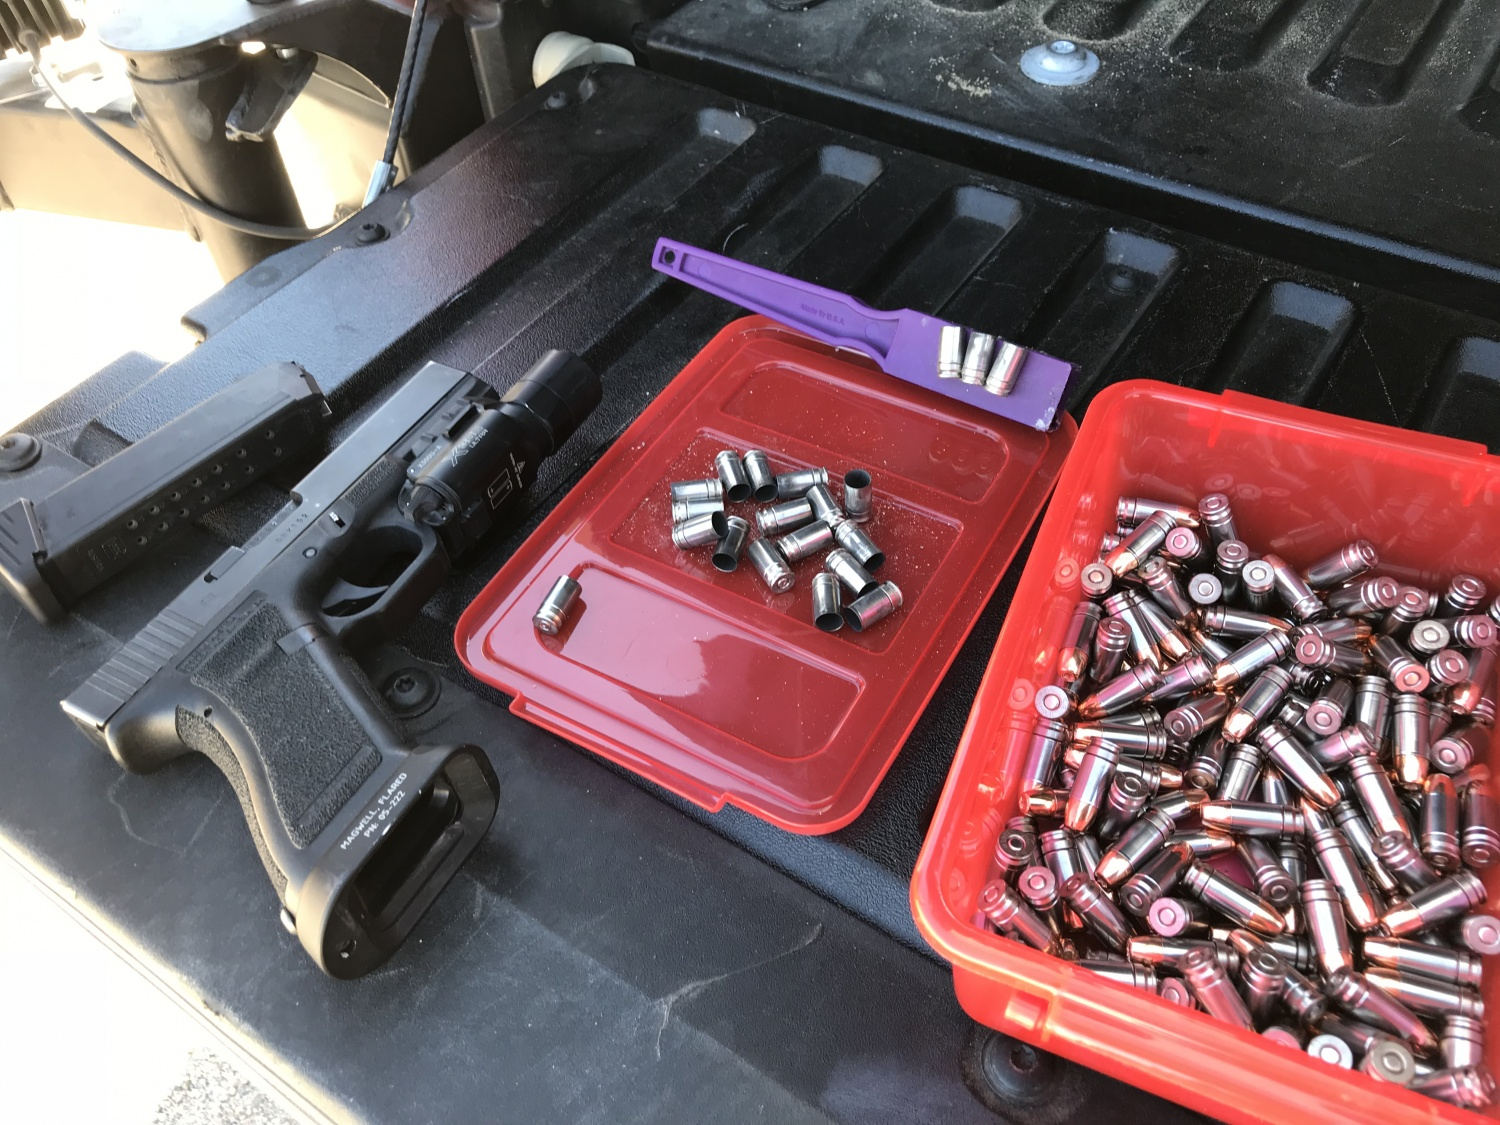 Spent NAS3 casings next to freshly loaded rounds. Note the purple magnet; these are very easy to pick up at the range.